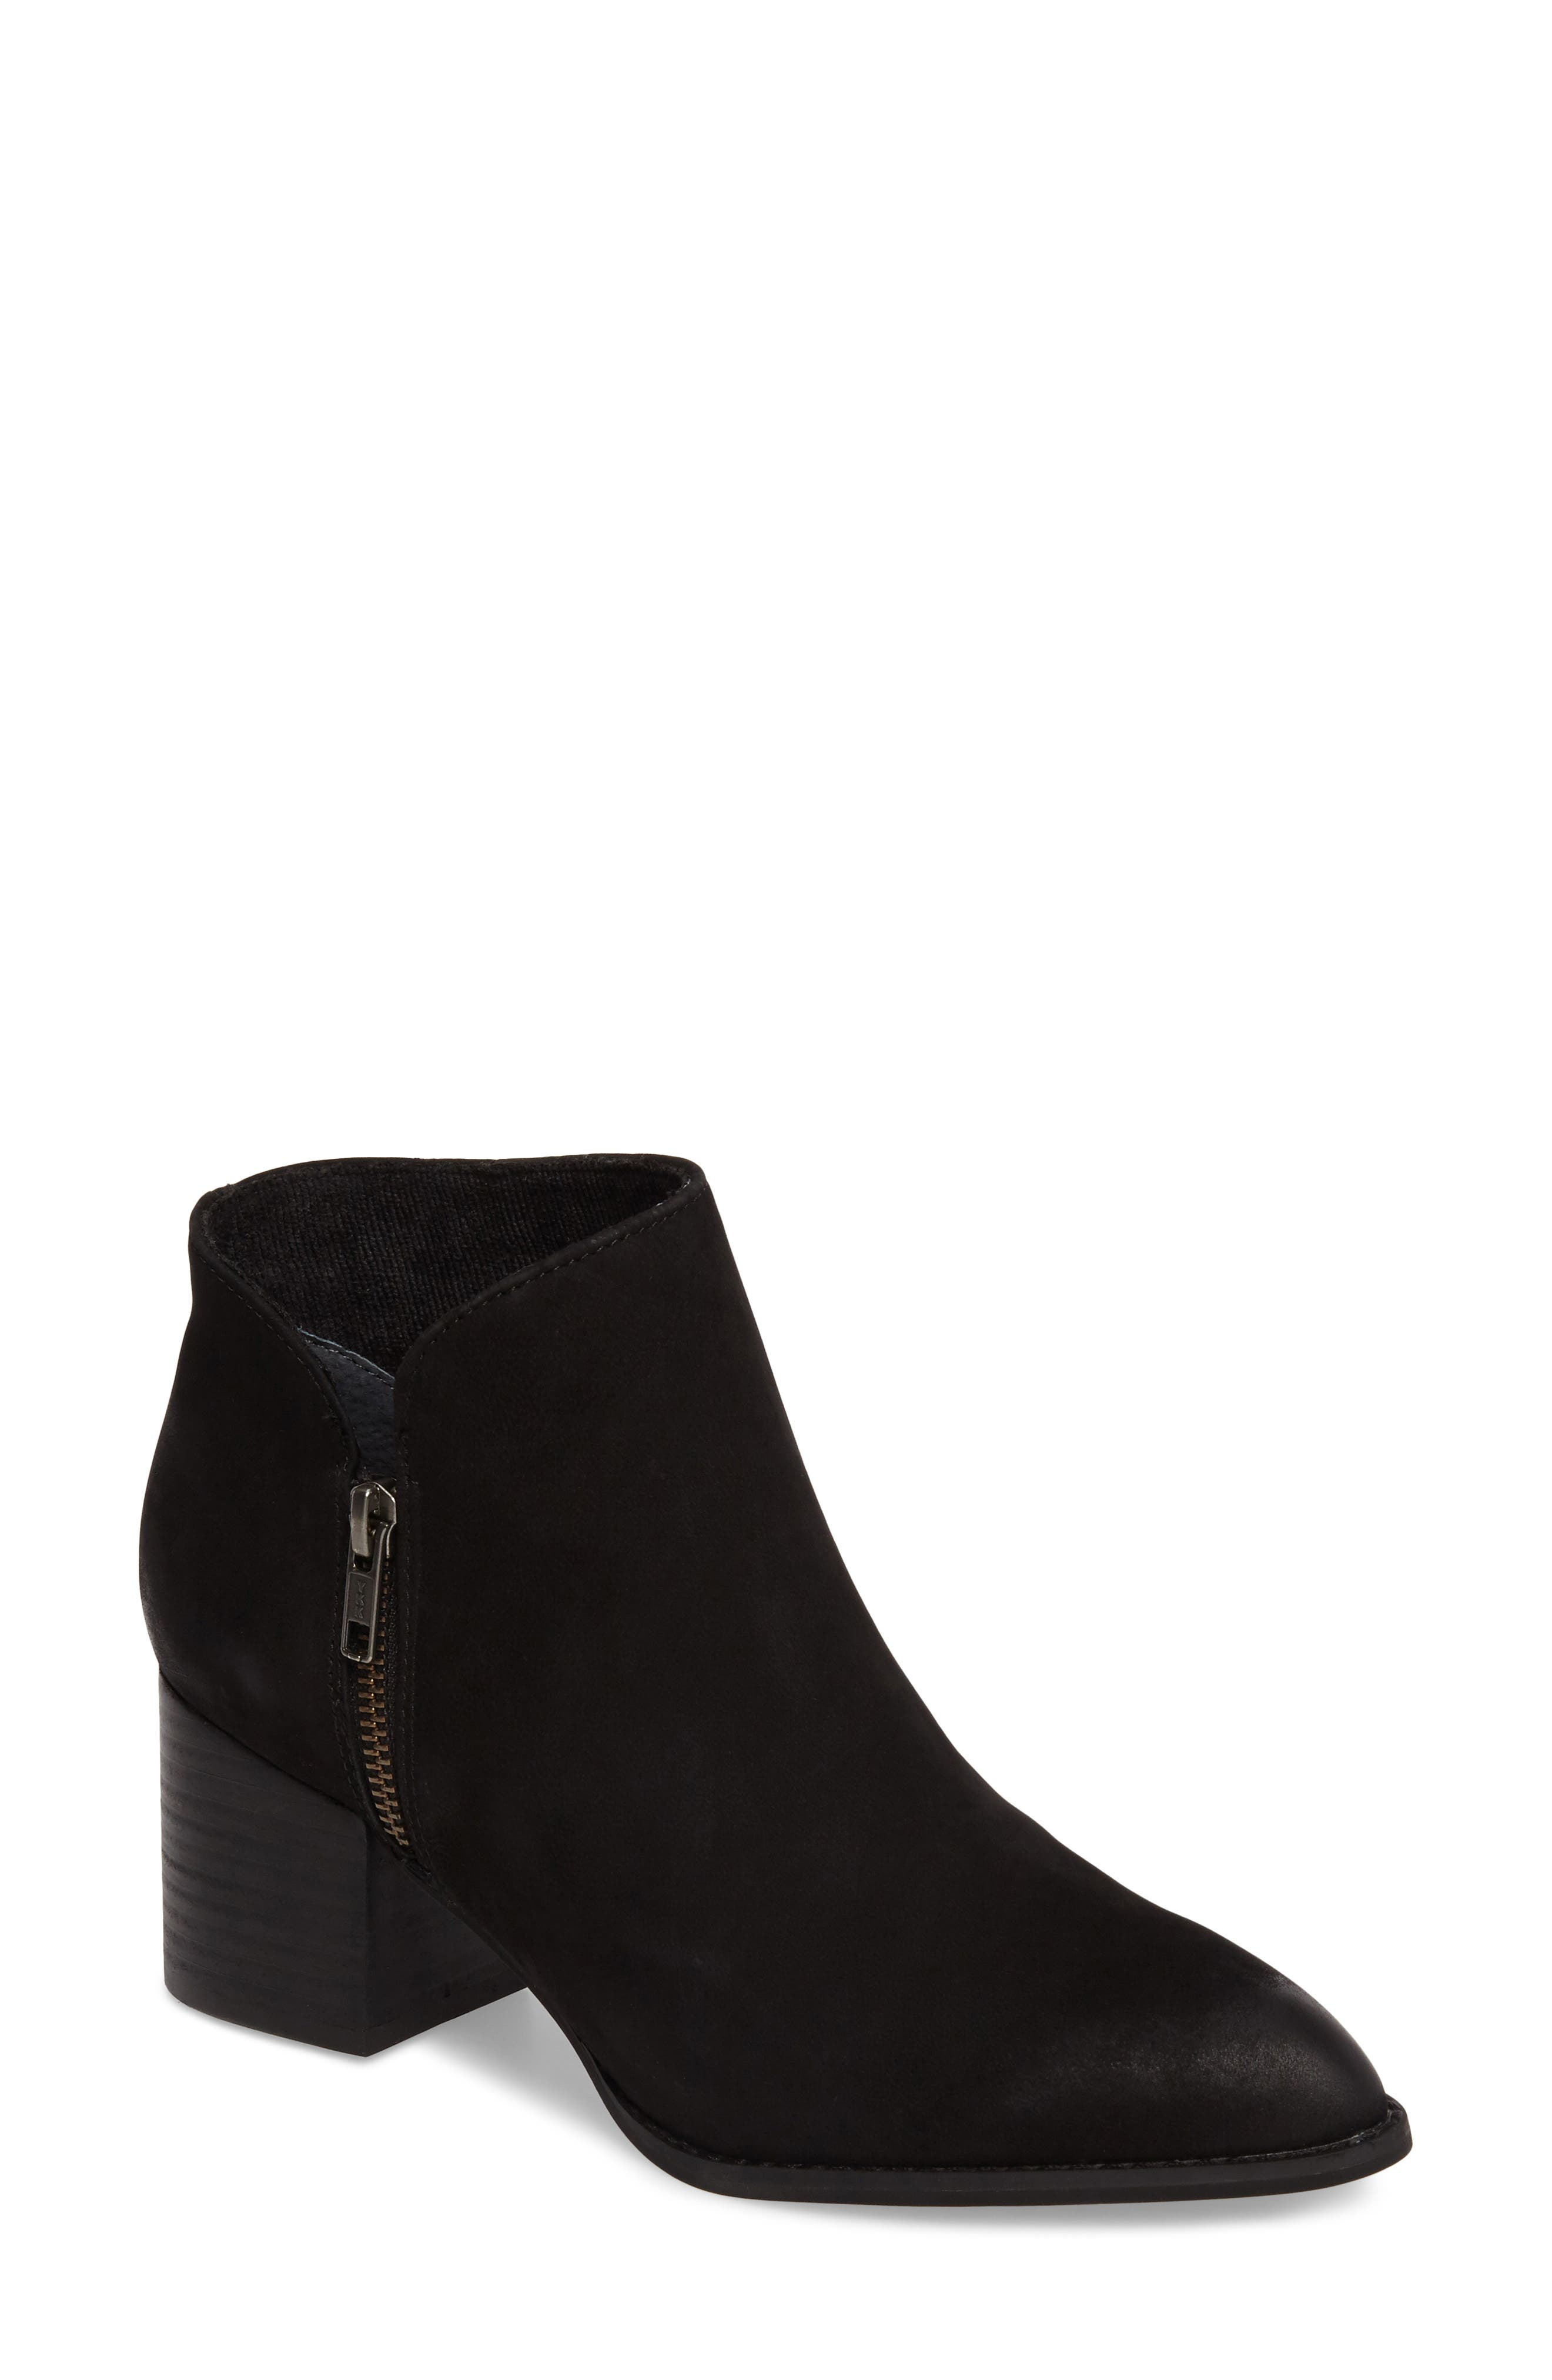 Chaparral Bootie,                         Main,                         color, Black Leather